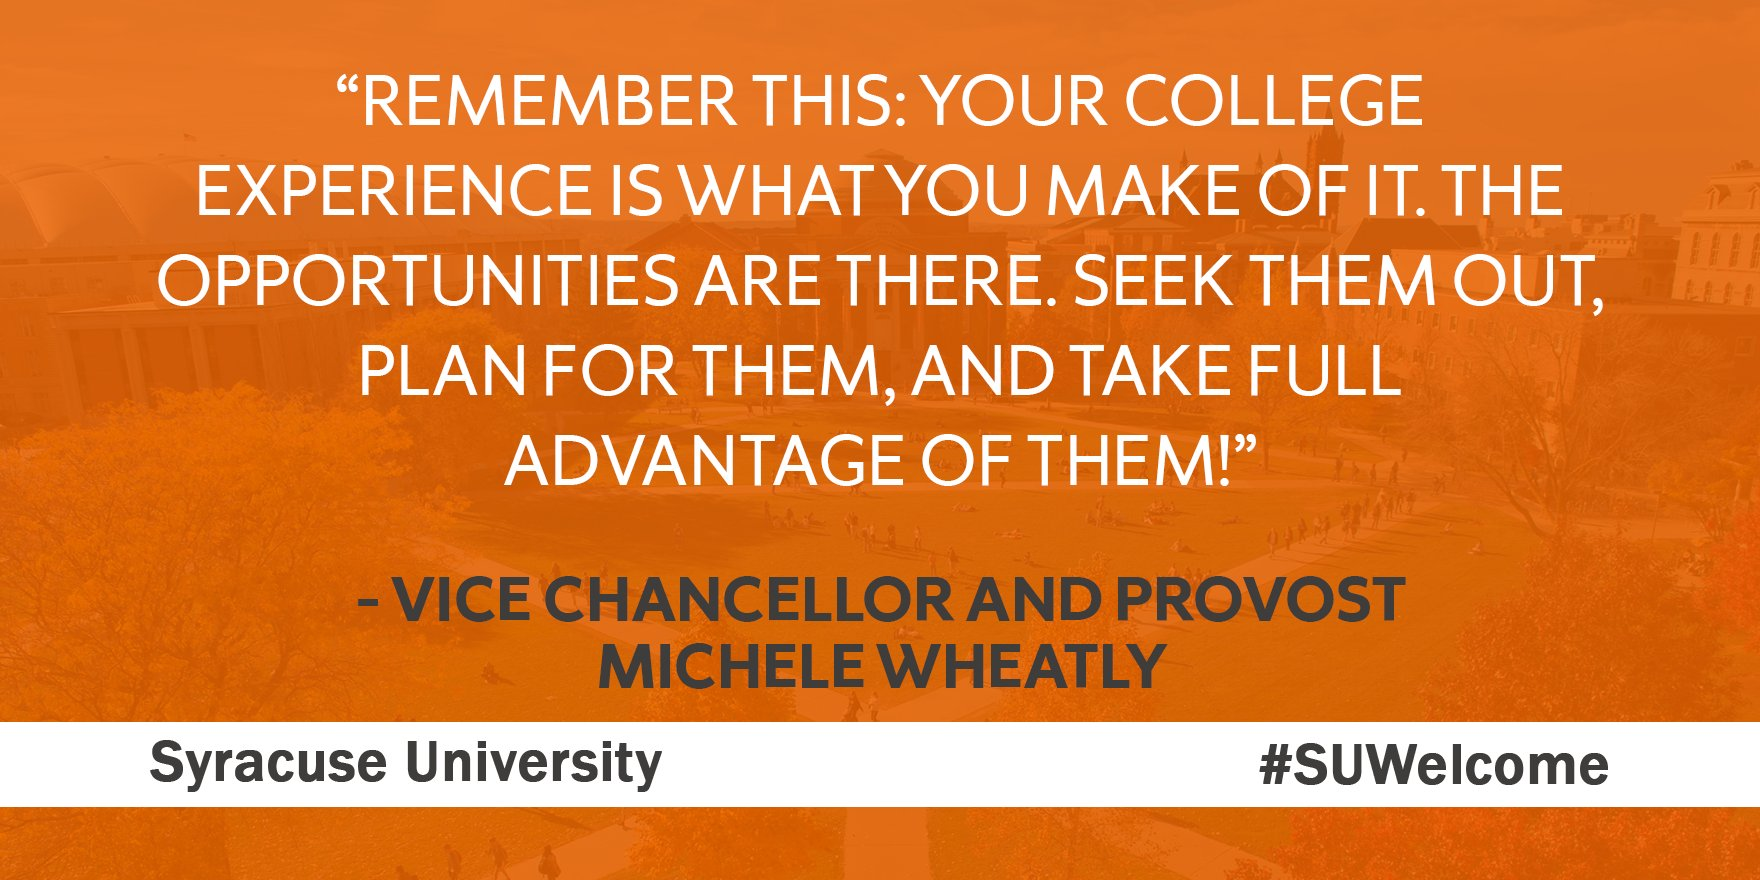 Vice Chancellor and Provost Michele Wheatly welcomes new students to #SyracuseU. #SUWelcome https://t.co/t7YxsMIKe3